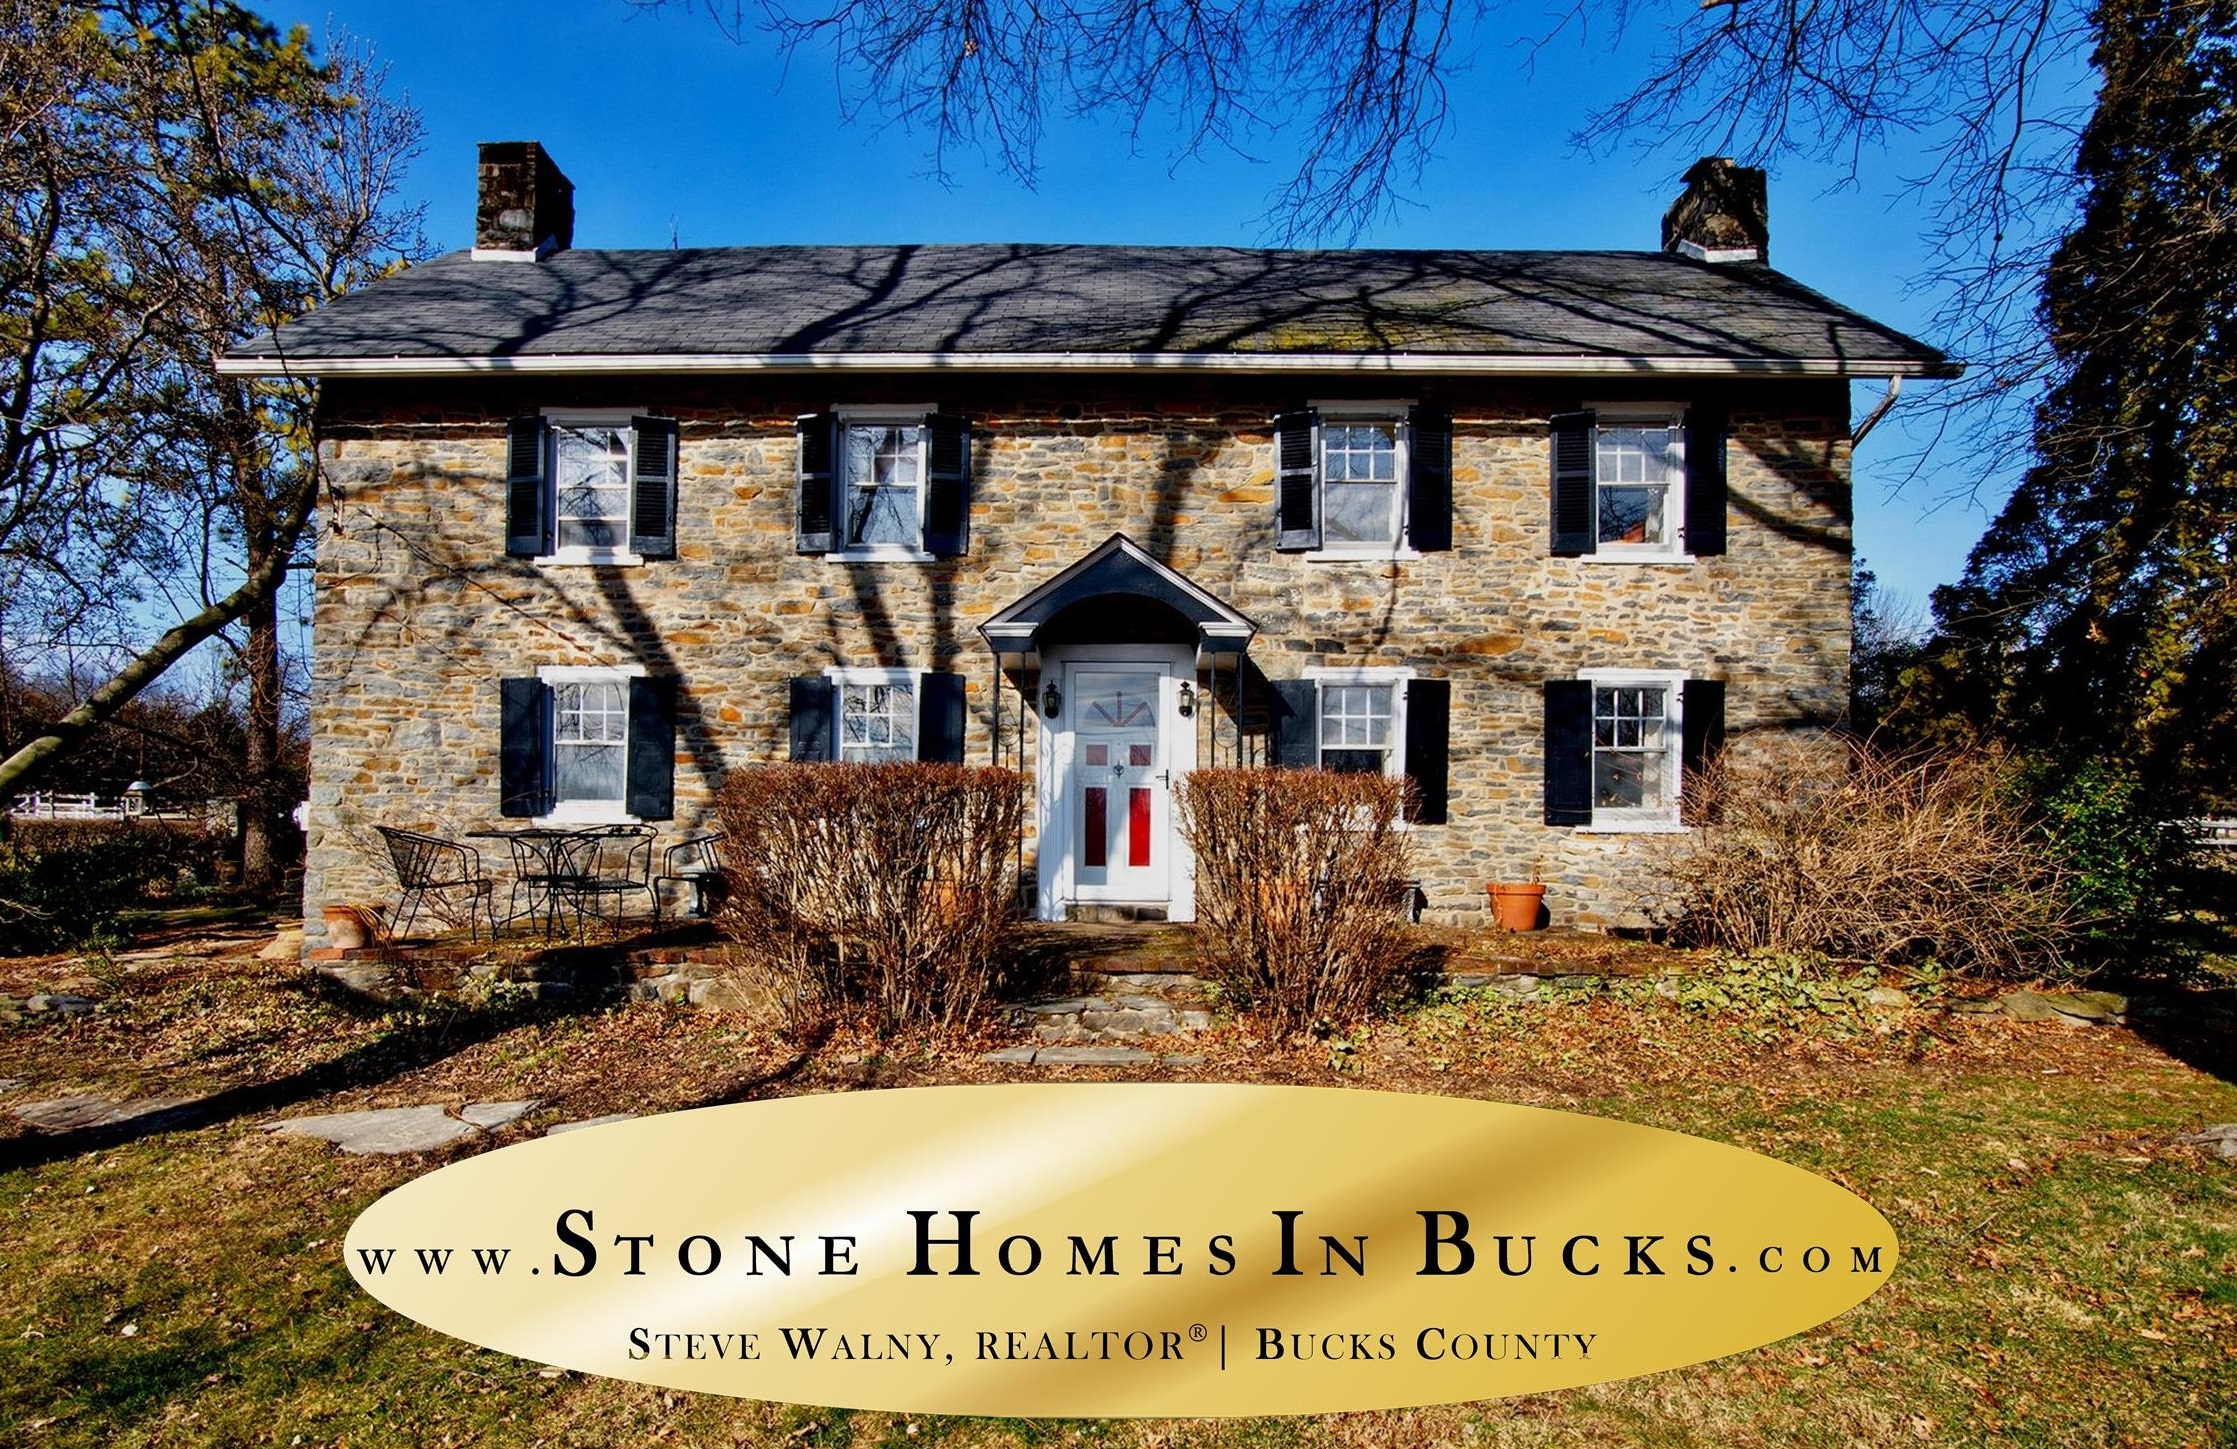 Penn-Walton Homestead | Stone Homes In Bucks | Doylestown Realtor | WEIDEL | Weidel Real Estate | Doylestown Realtors | Weidel Realtors